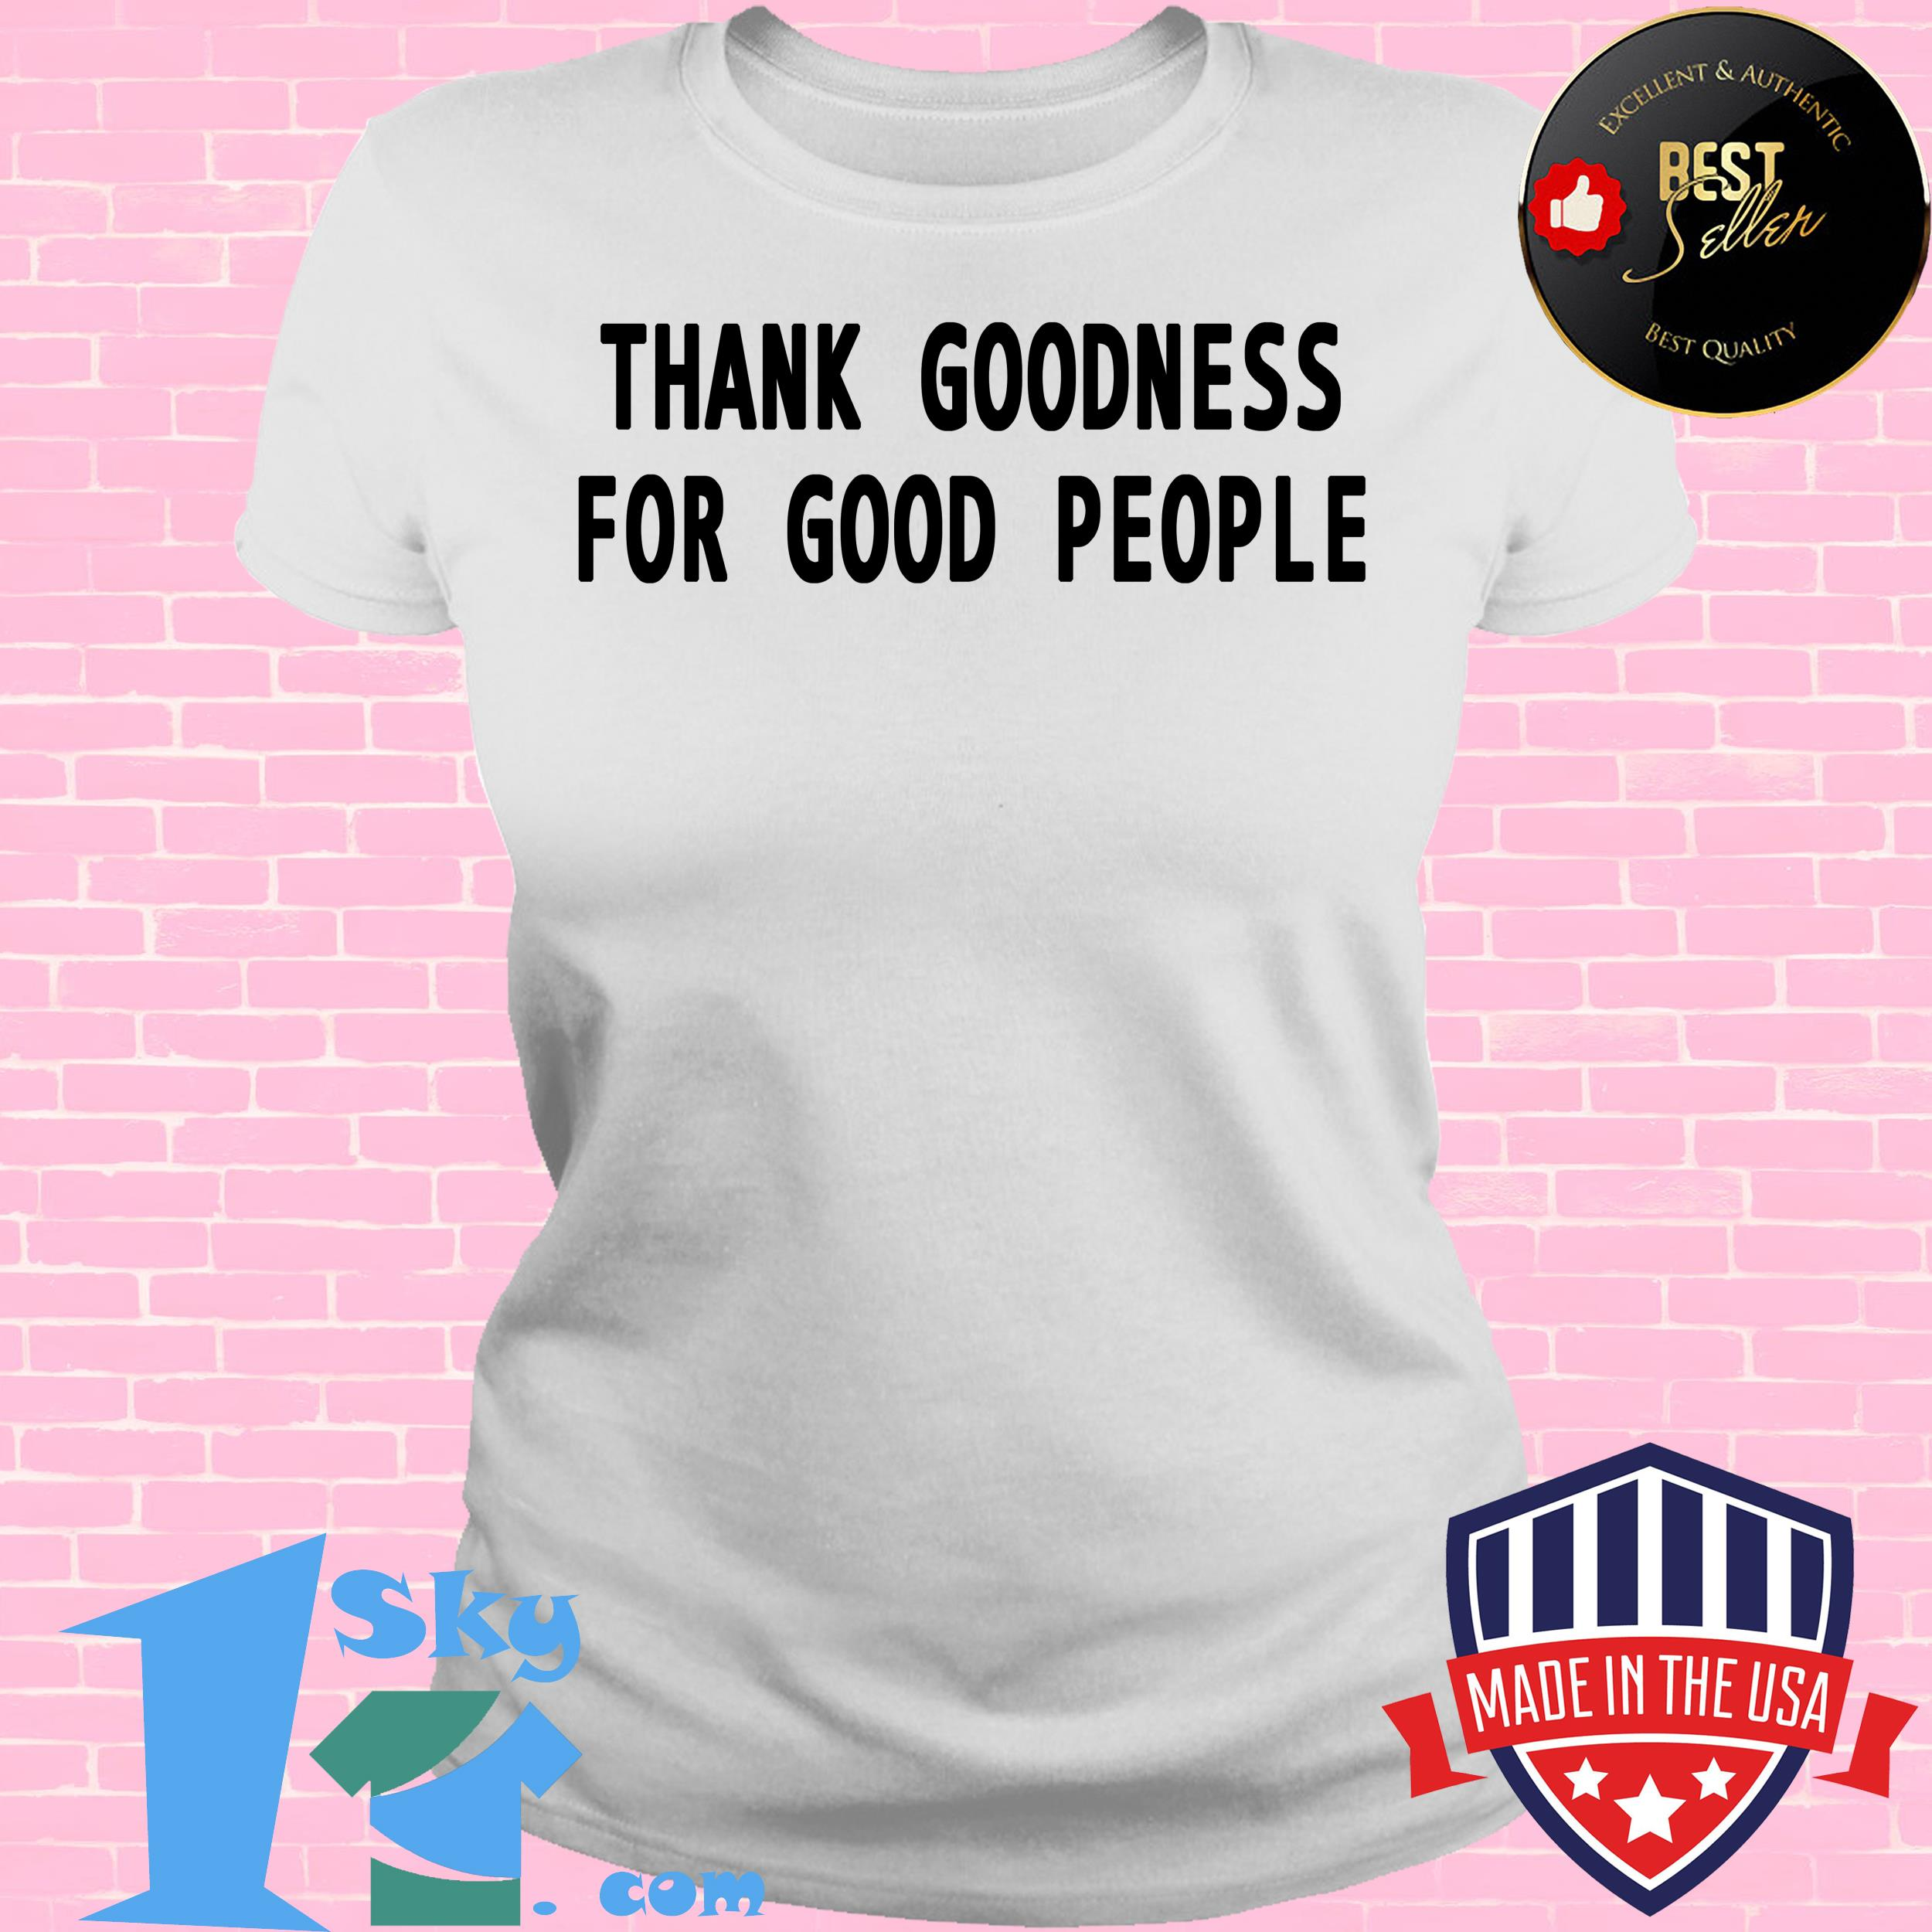 tank goodness for good people ladies tee - Thank Goodness For Good People shirt